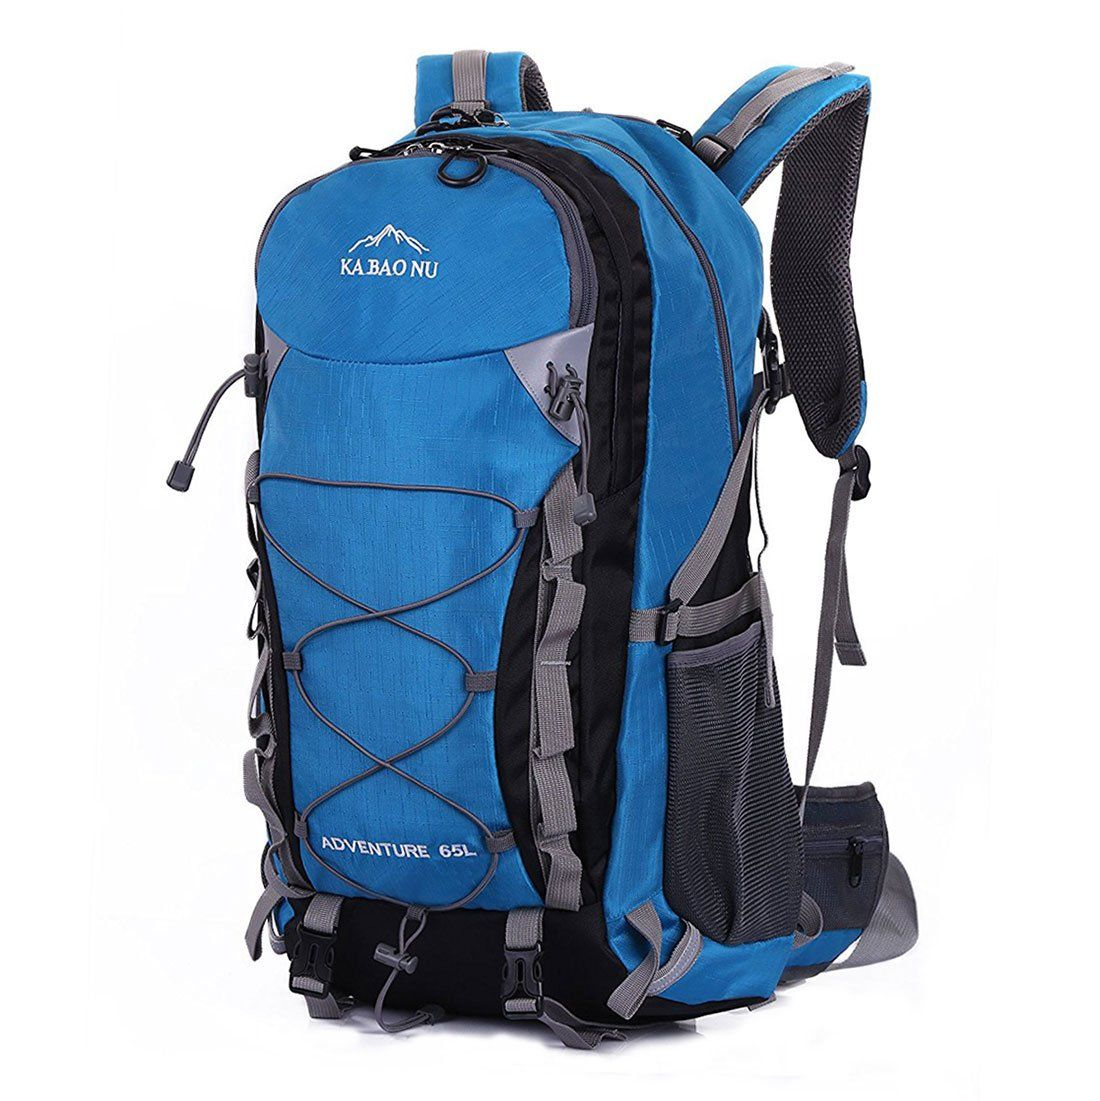 16a8ad569d Mooedcoe 65L Waterproof Hiking Daypack Outdoor Travel Camping Backpack for  Men Sky Blue     Click image for more details. (This is an affiliate link)    ...